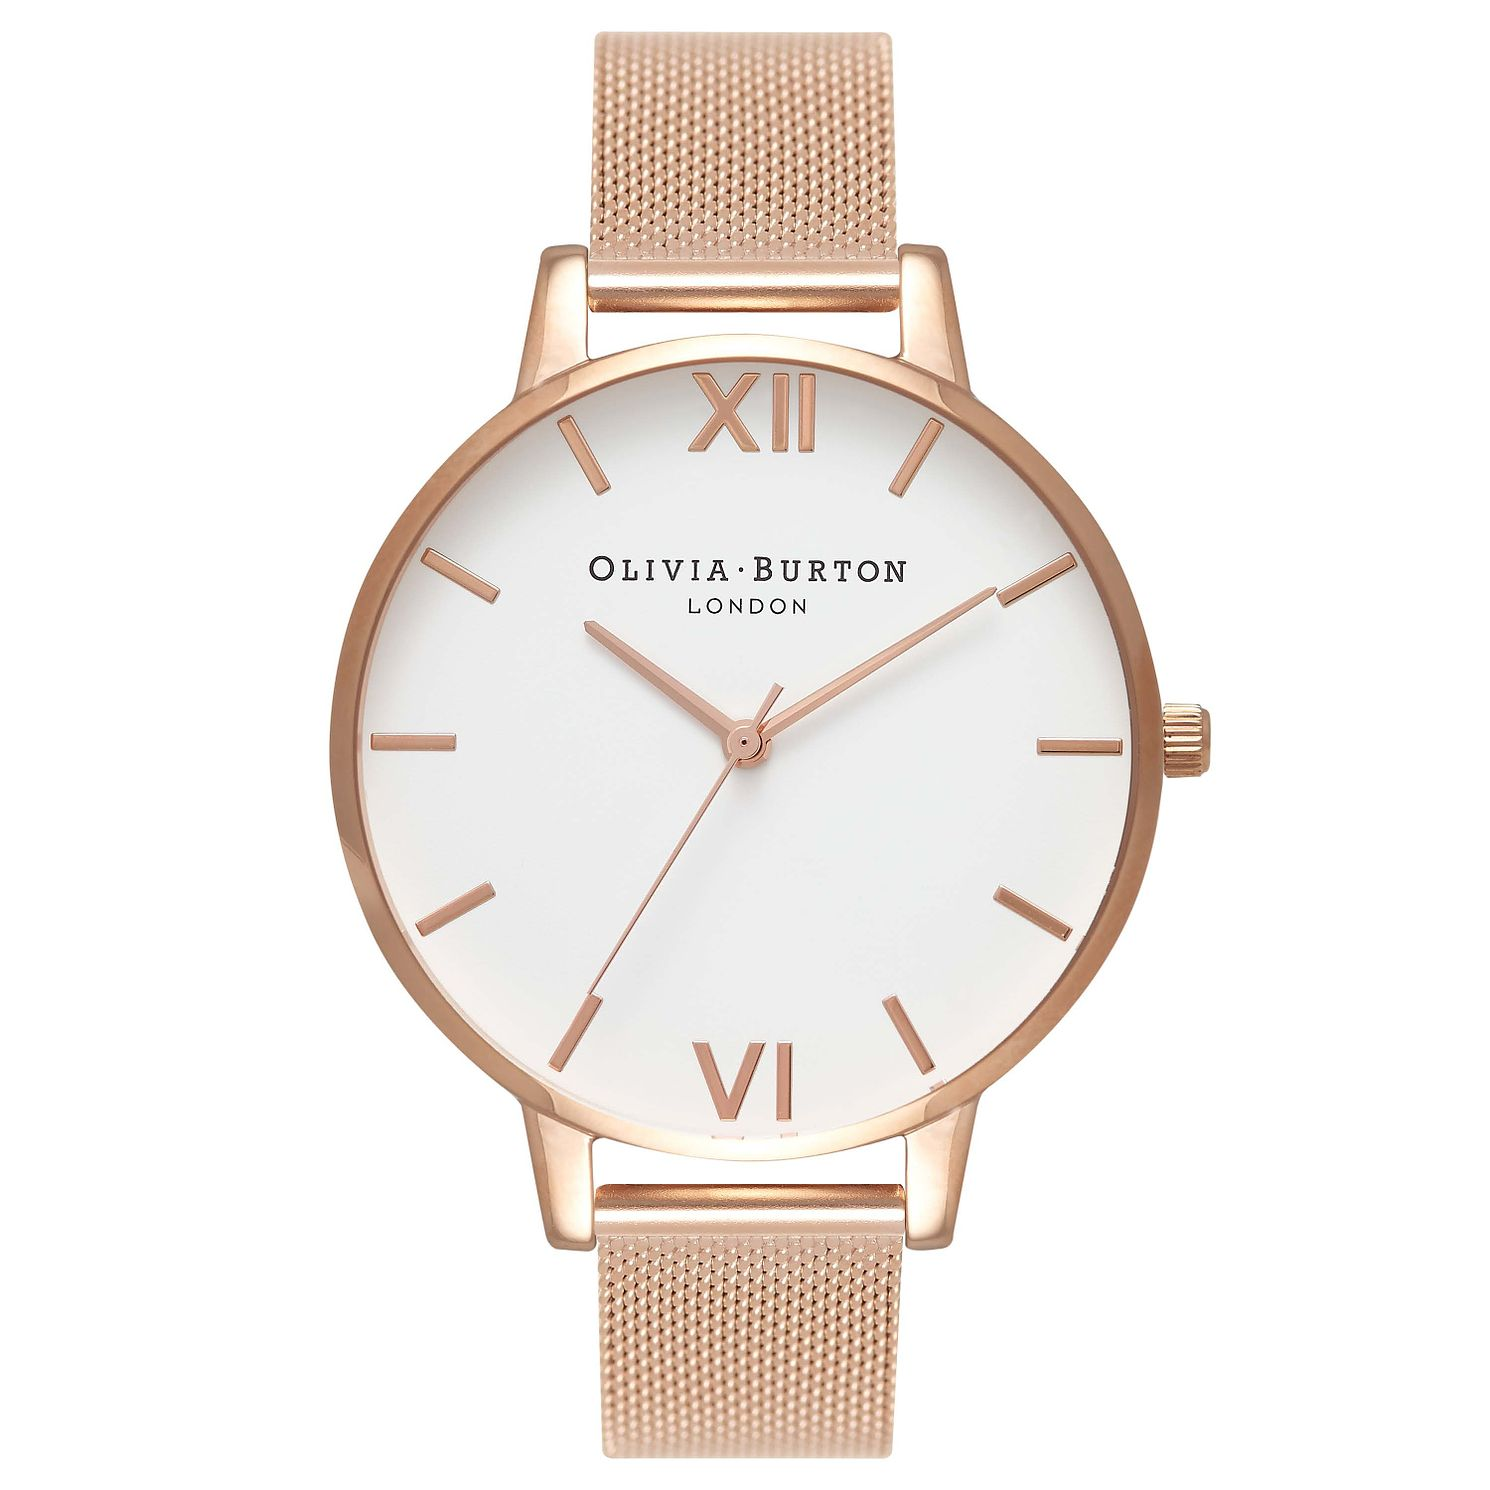 Olivia Burton Big Dial Rose Gold Metal Plated Mesh Watch - Product number 8817049